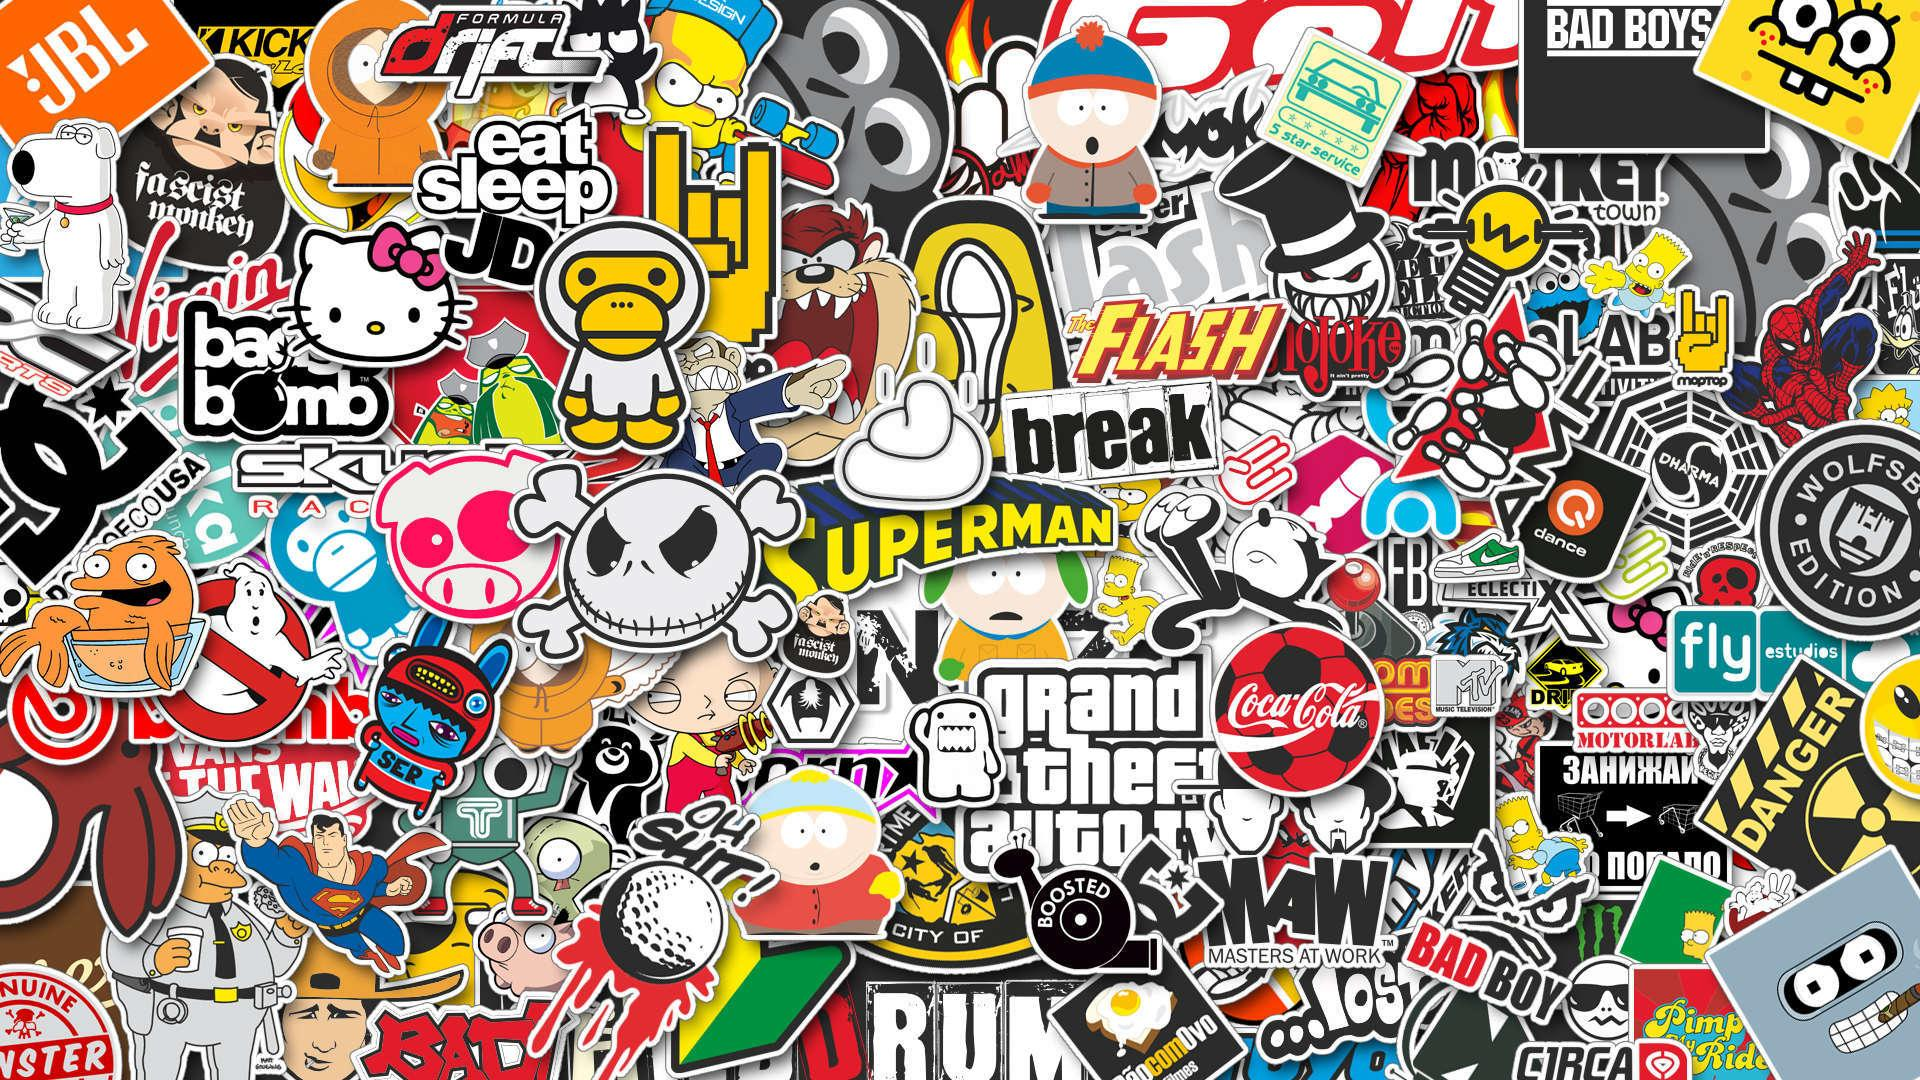 Sticker Bomb Wallpaper Hd Download